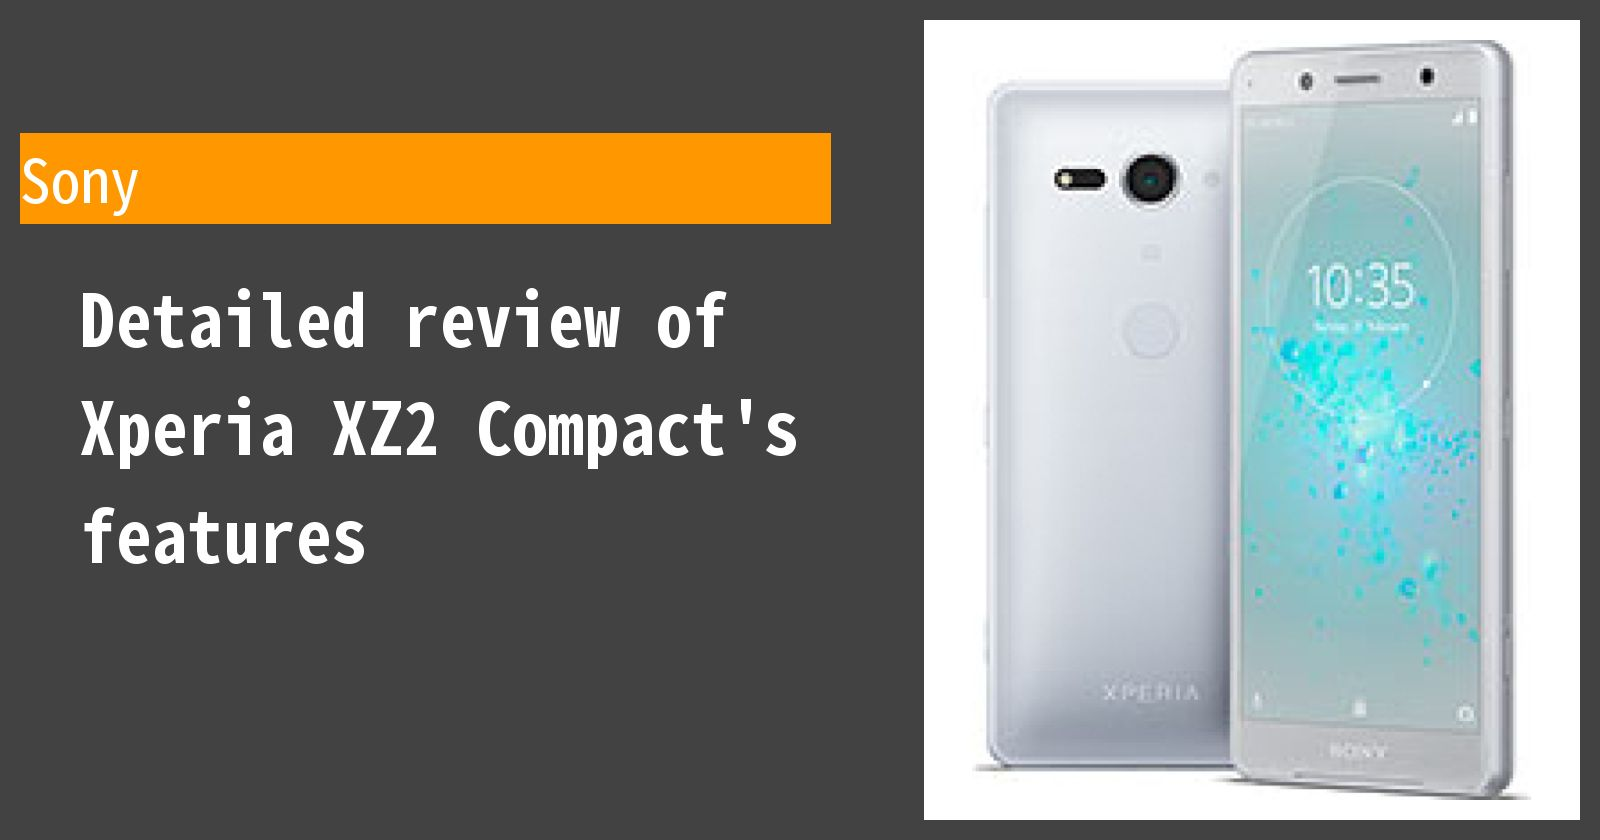 Detailed review of Xperia XZ2 Compact's features